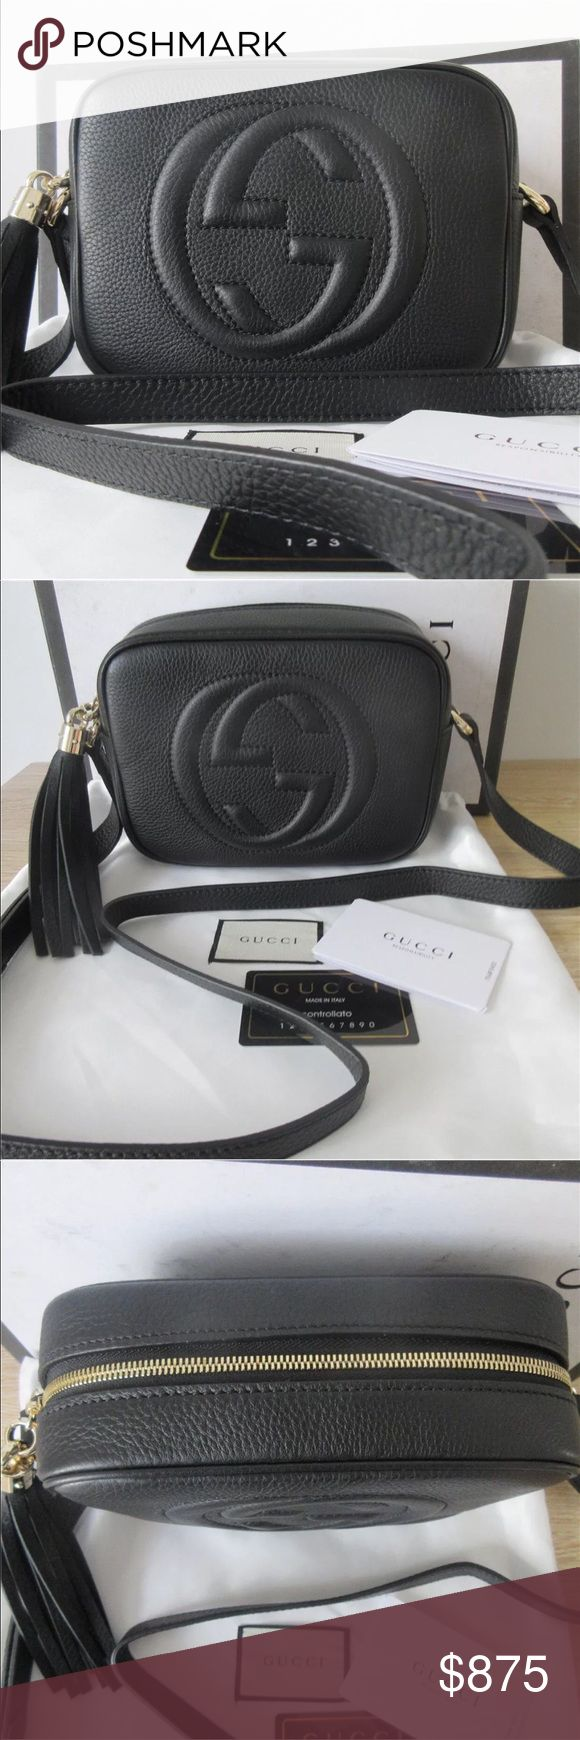 Black Gucci Soho Disco Crossbody Bag 100% Authentic 🛍 We are a very negotiable service 🛍 We provide overnight shipping and express shipping 🛍 Our transactions are made through third party applications 🛍 If you are interested in buying this product please contact us via 646-431-6521 🛍 Gucci Bags Crossbody Bags